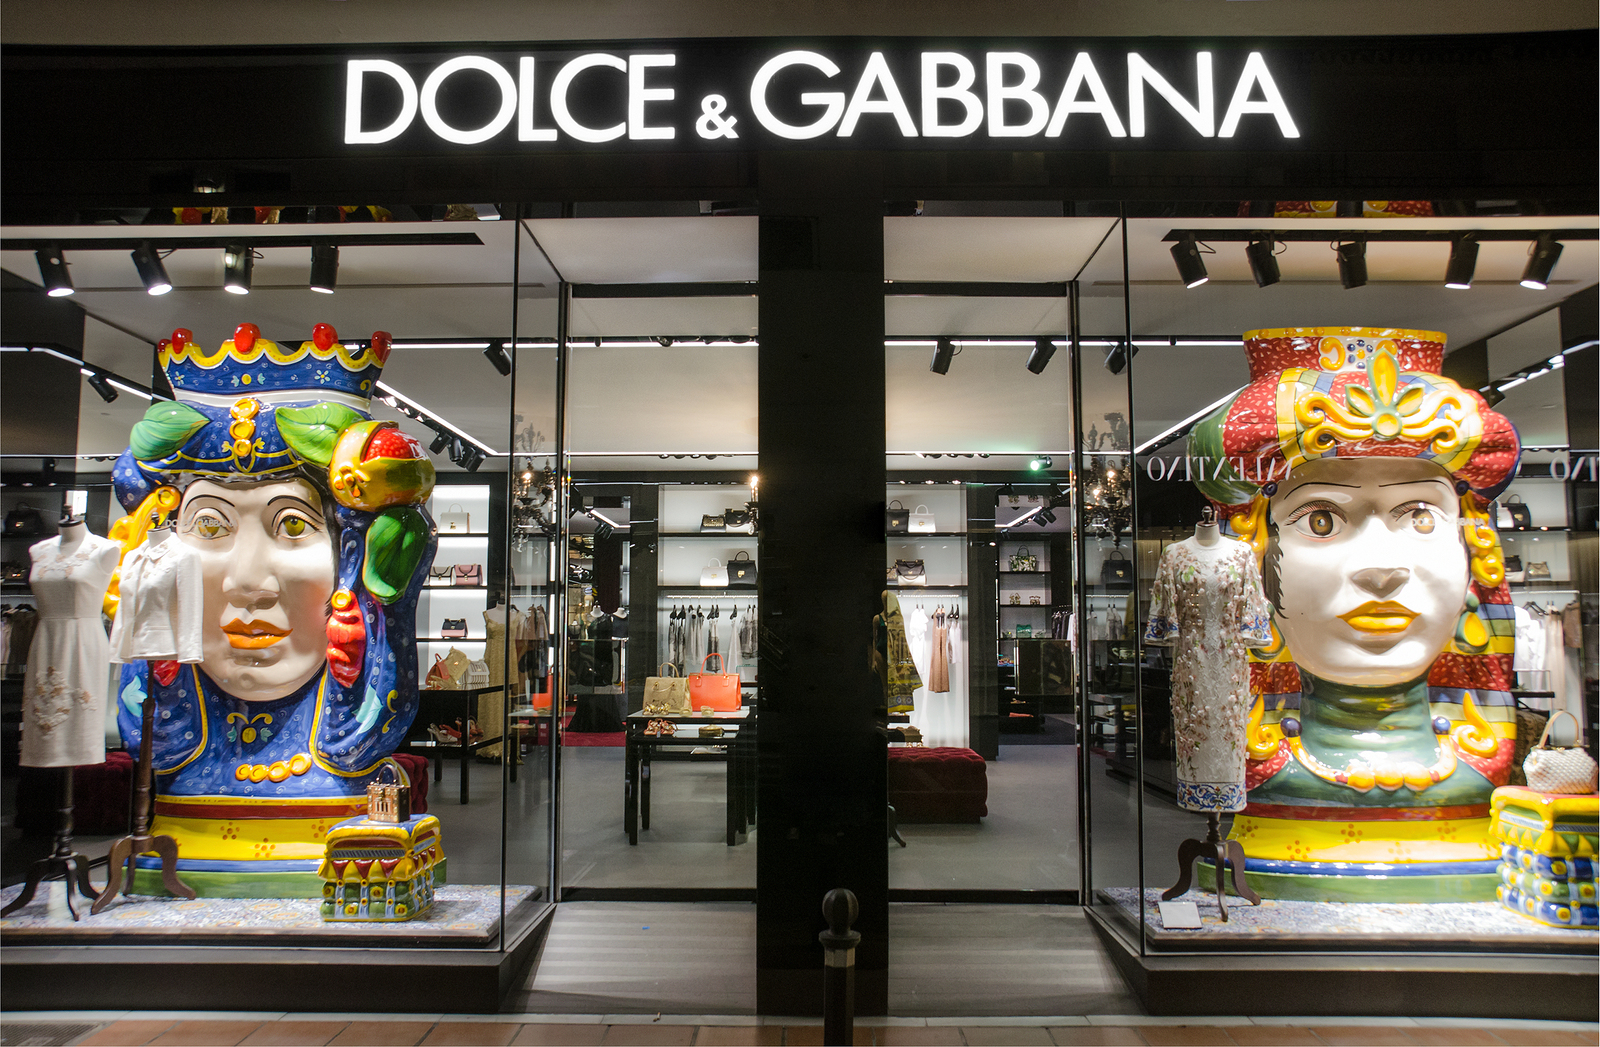 Puerto Banús property and living Dolce & Gabbana store in Puerto Banus Marbella Spain.